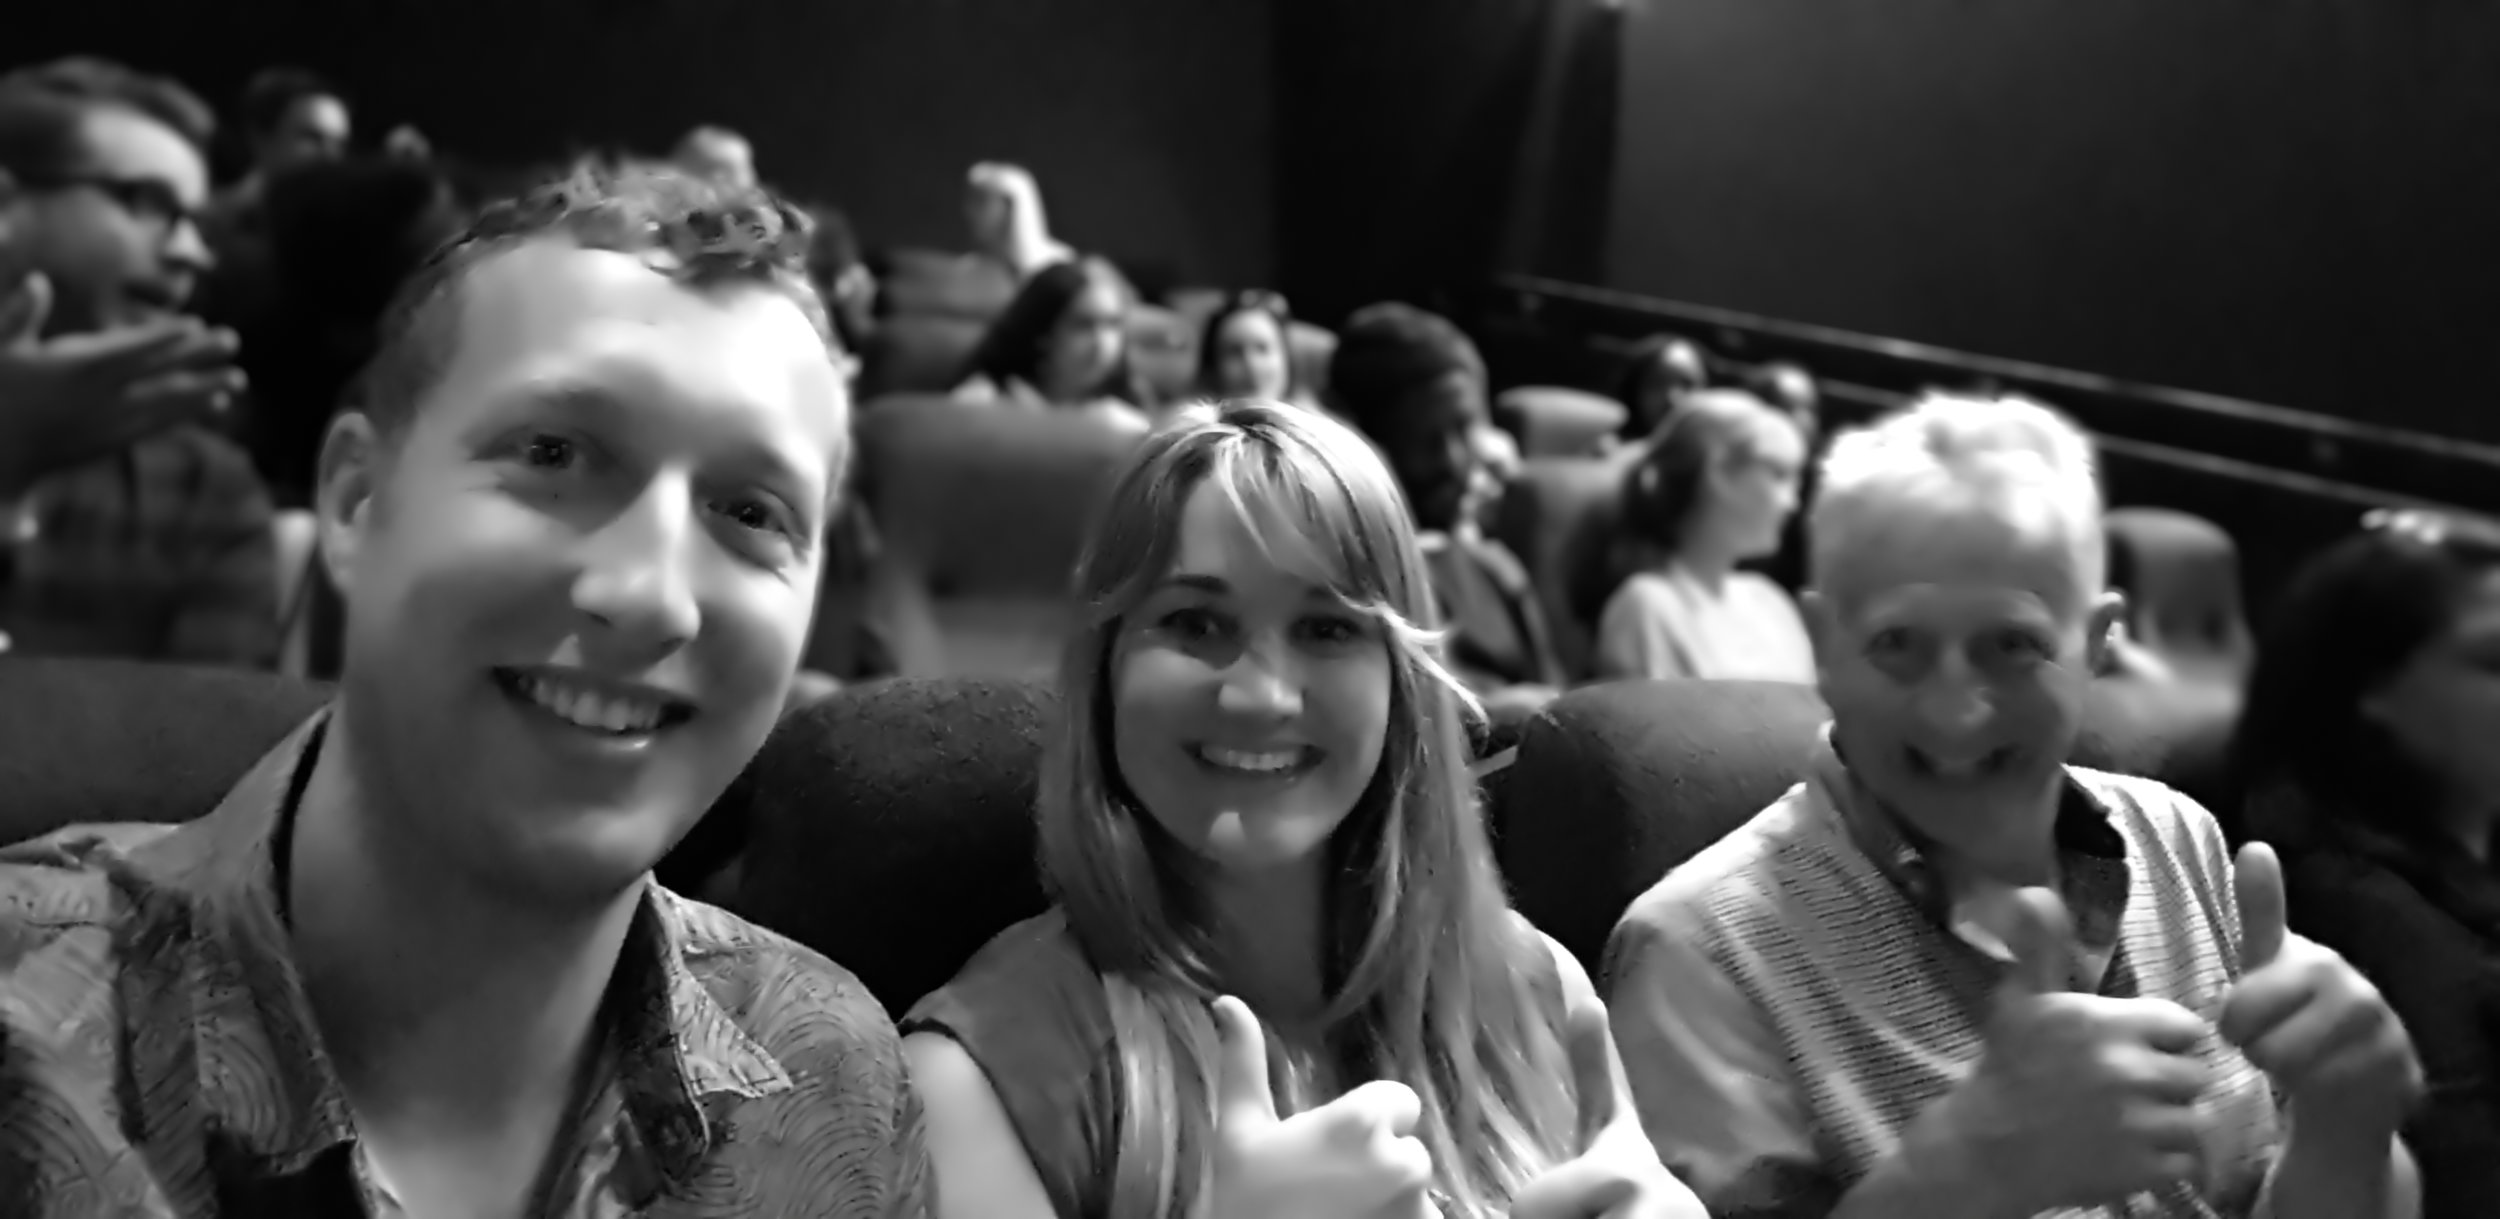 The team excited to be at the ROCKS cast and crew screening! - London July 2019